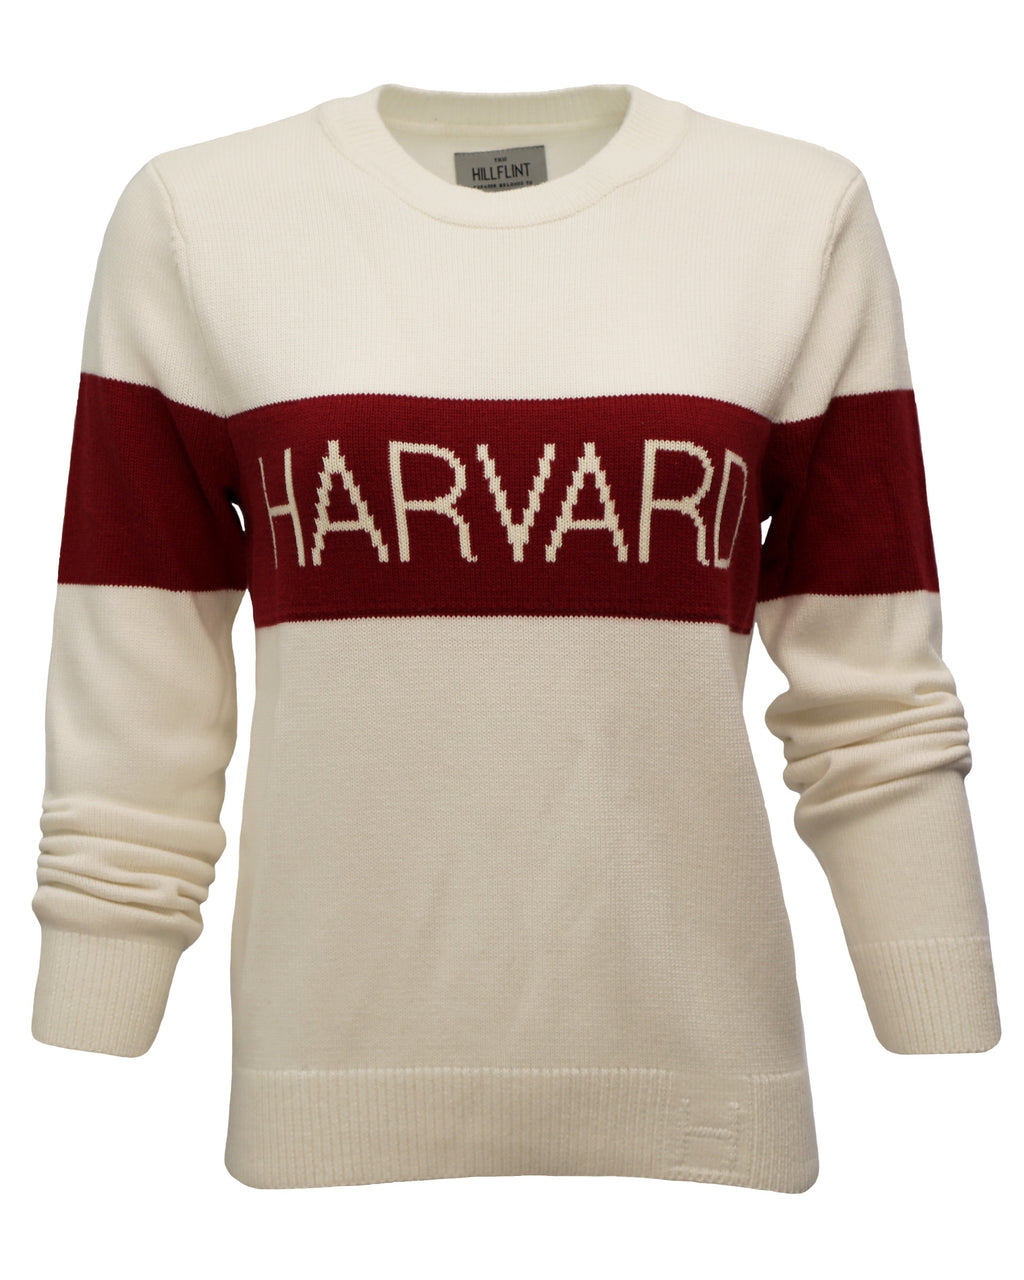 Ladies Retro Stripe Sweater